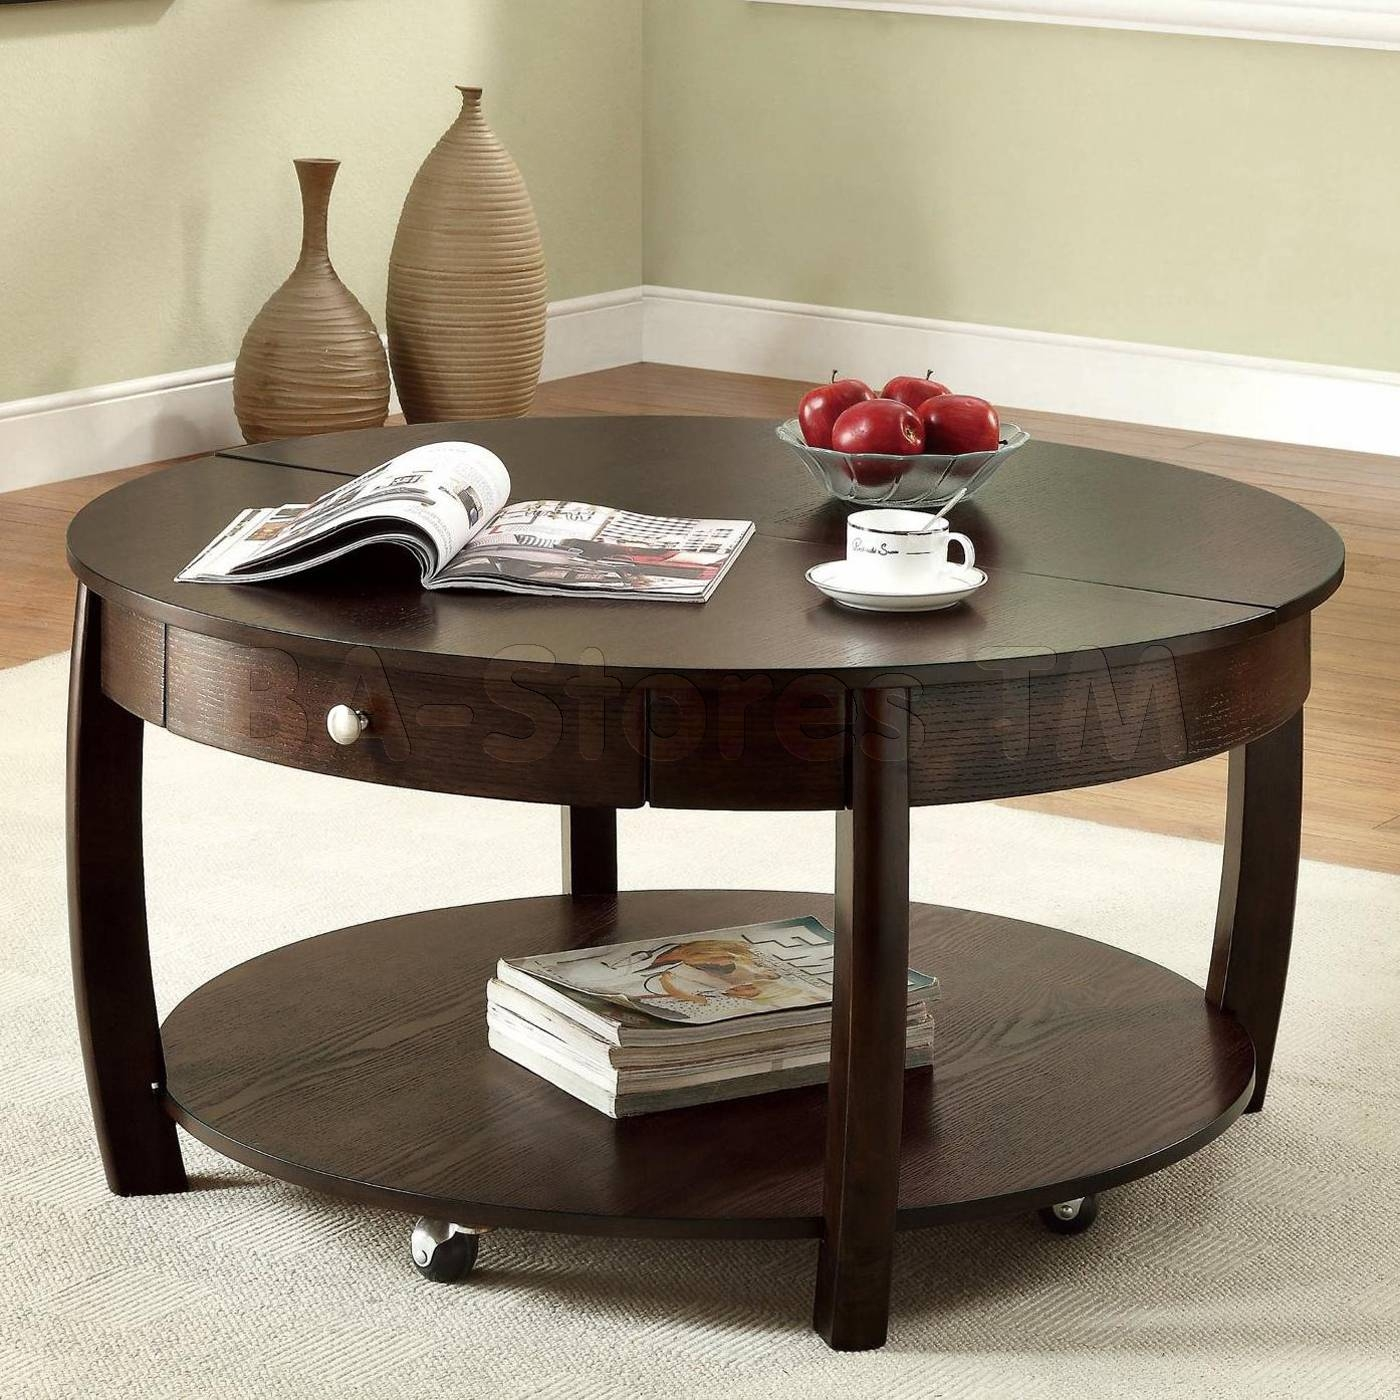 Delightful Furnishing In Living Room Design Inspiration Shows intended for Round Coffee Tables With Storage (Image 15 of 30)